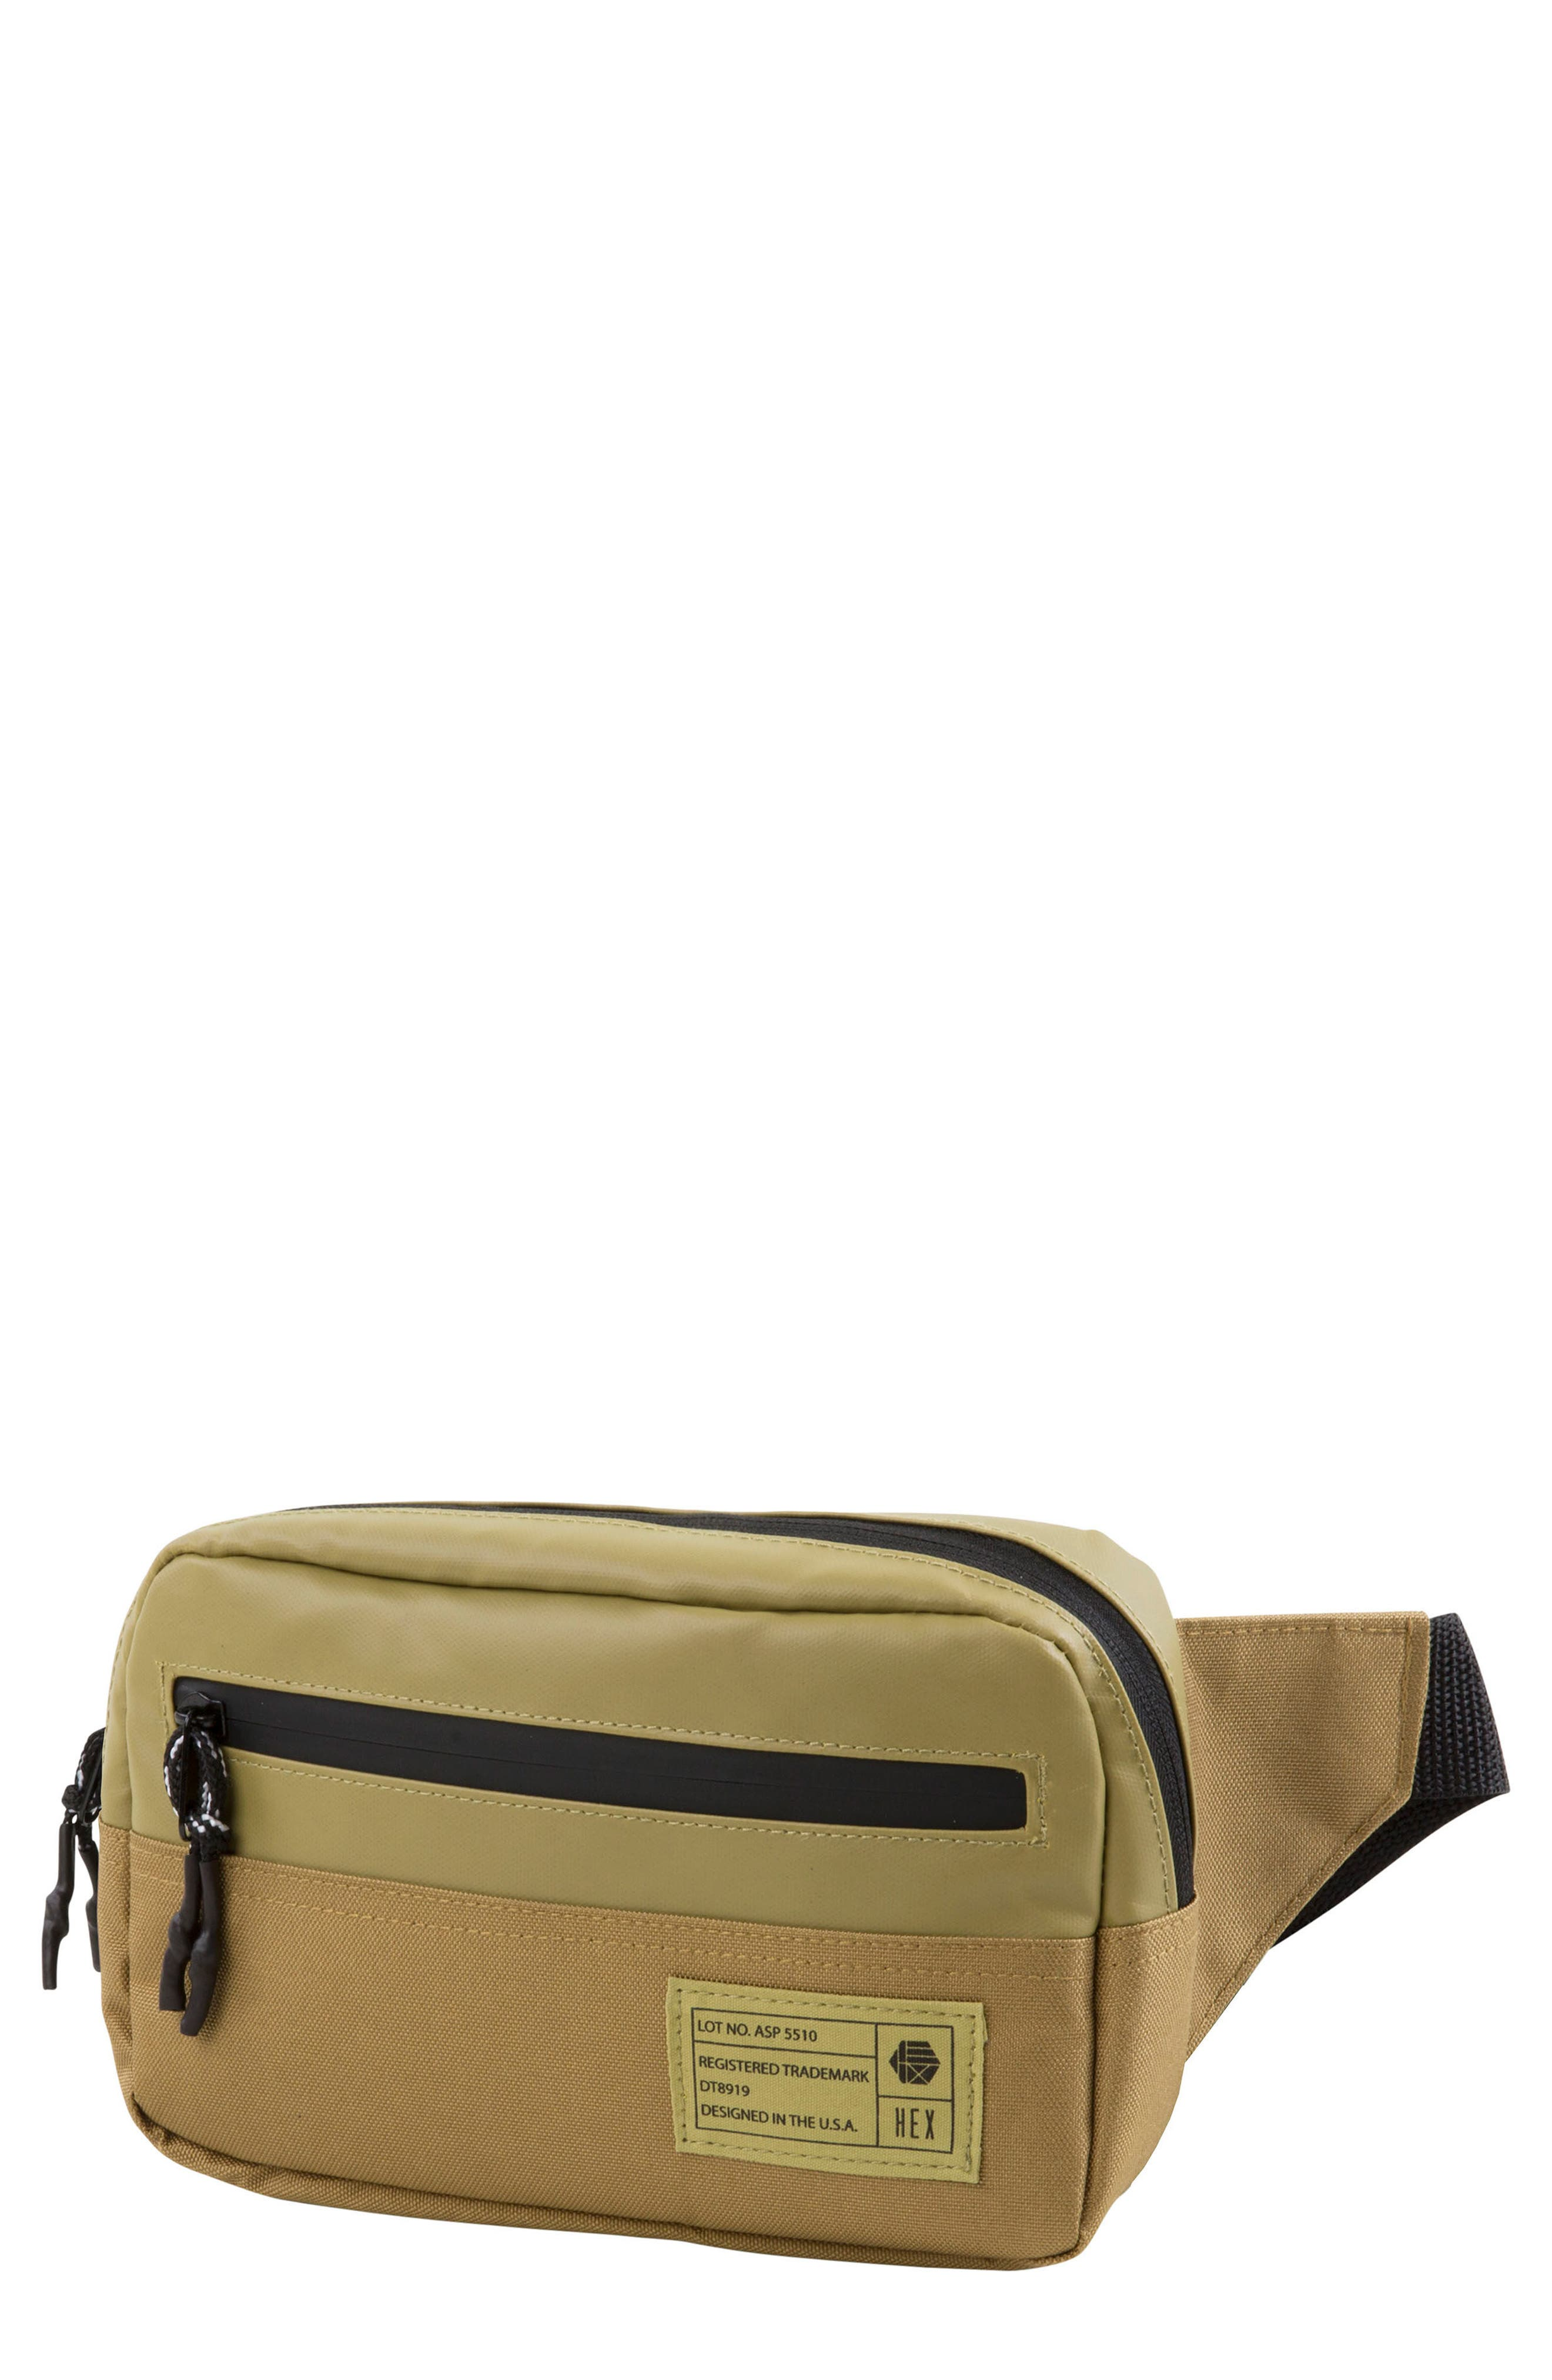 Aspect Collection Water Resistant Waist Pack,                         Main,                         color, Tan